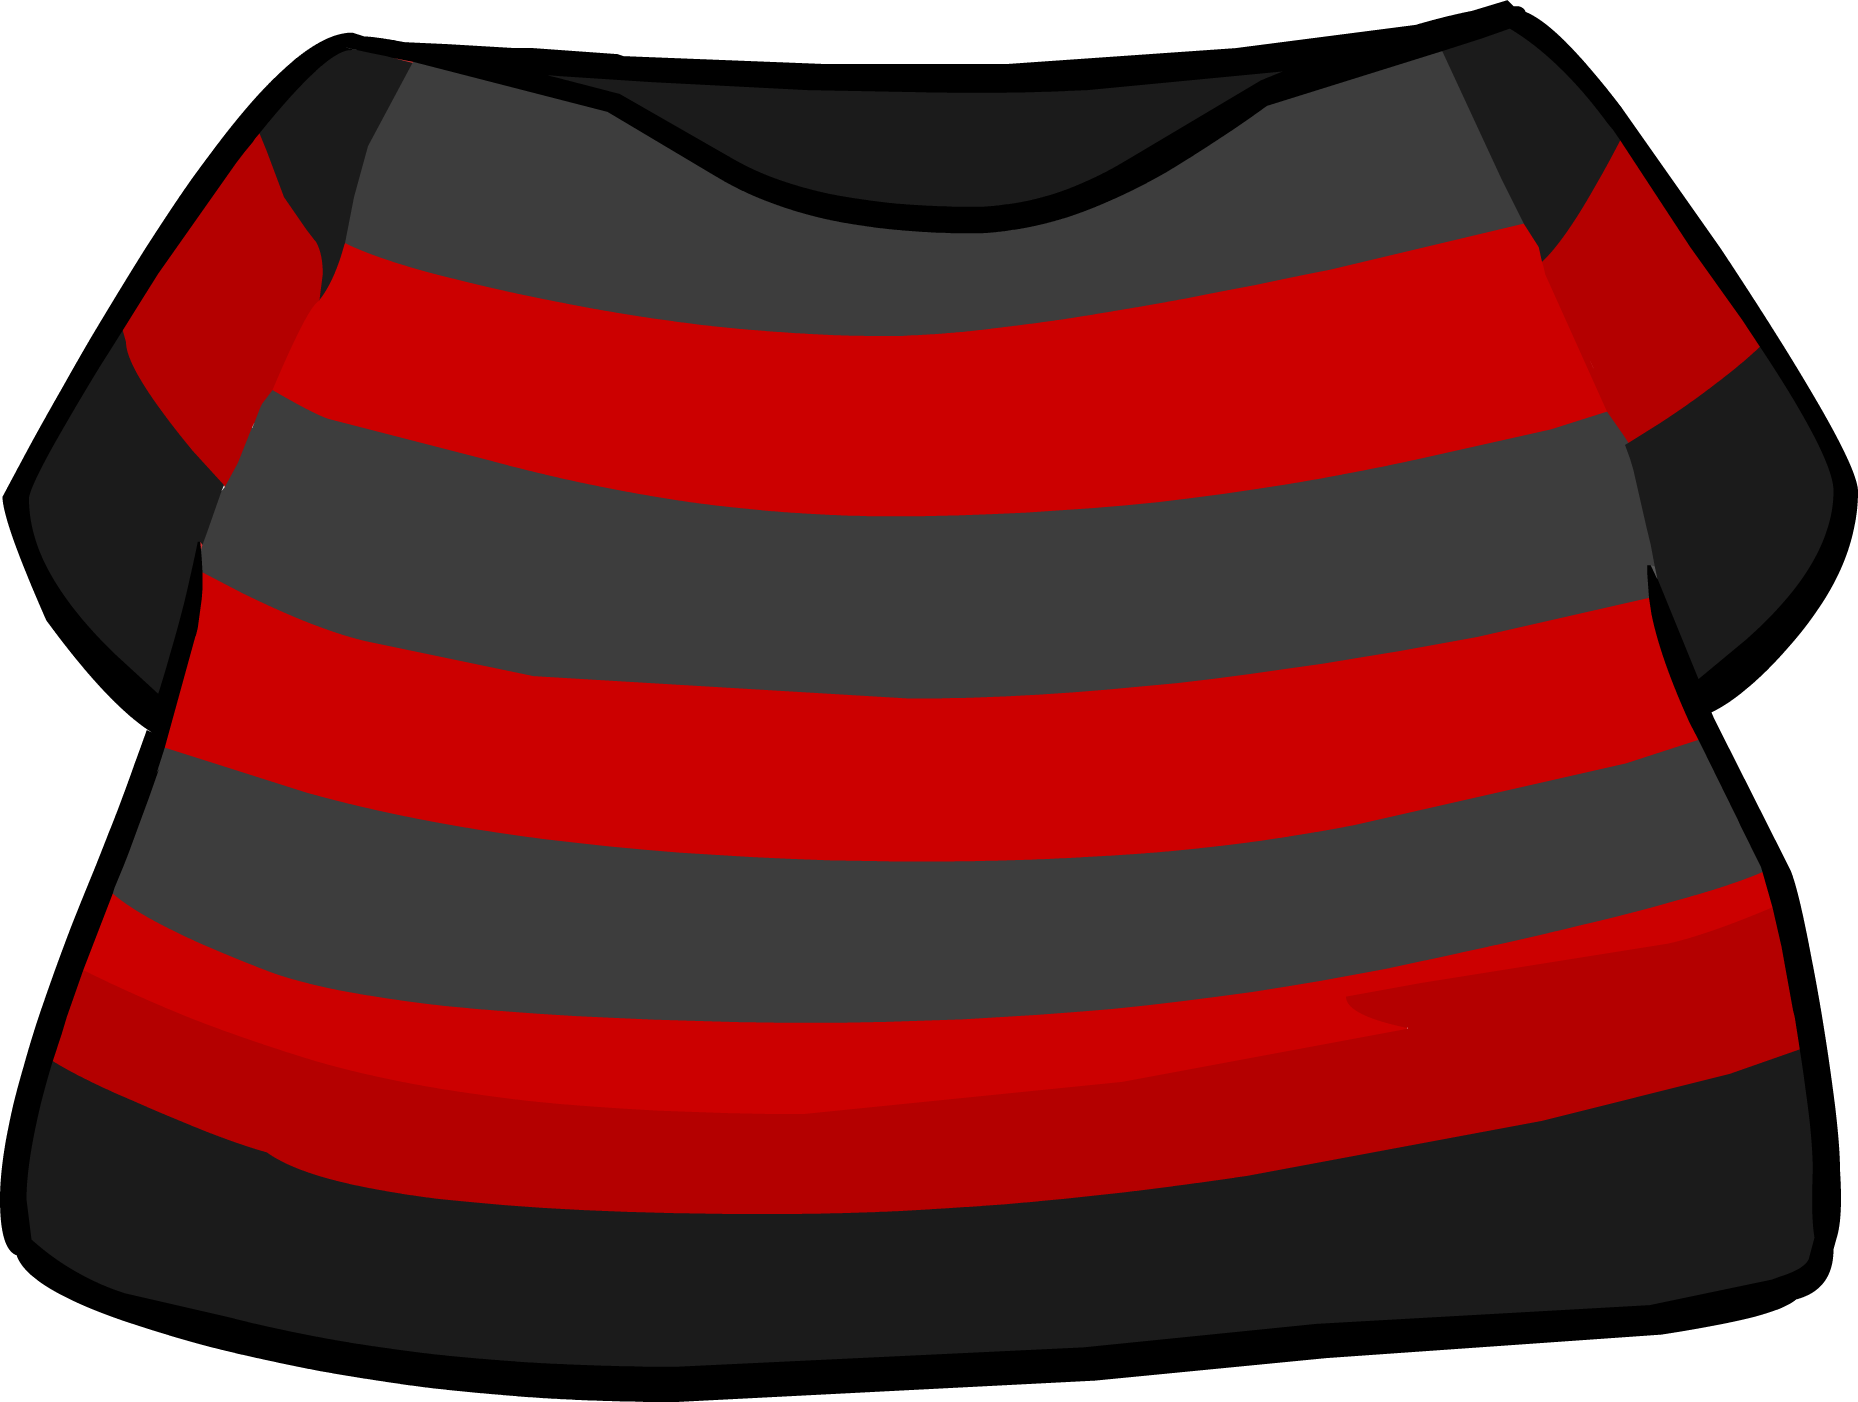 Black and Red Sailor Shirt | Club Penguin Wiki | FANDOM powered by ...